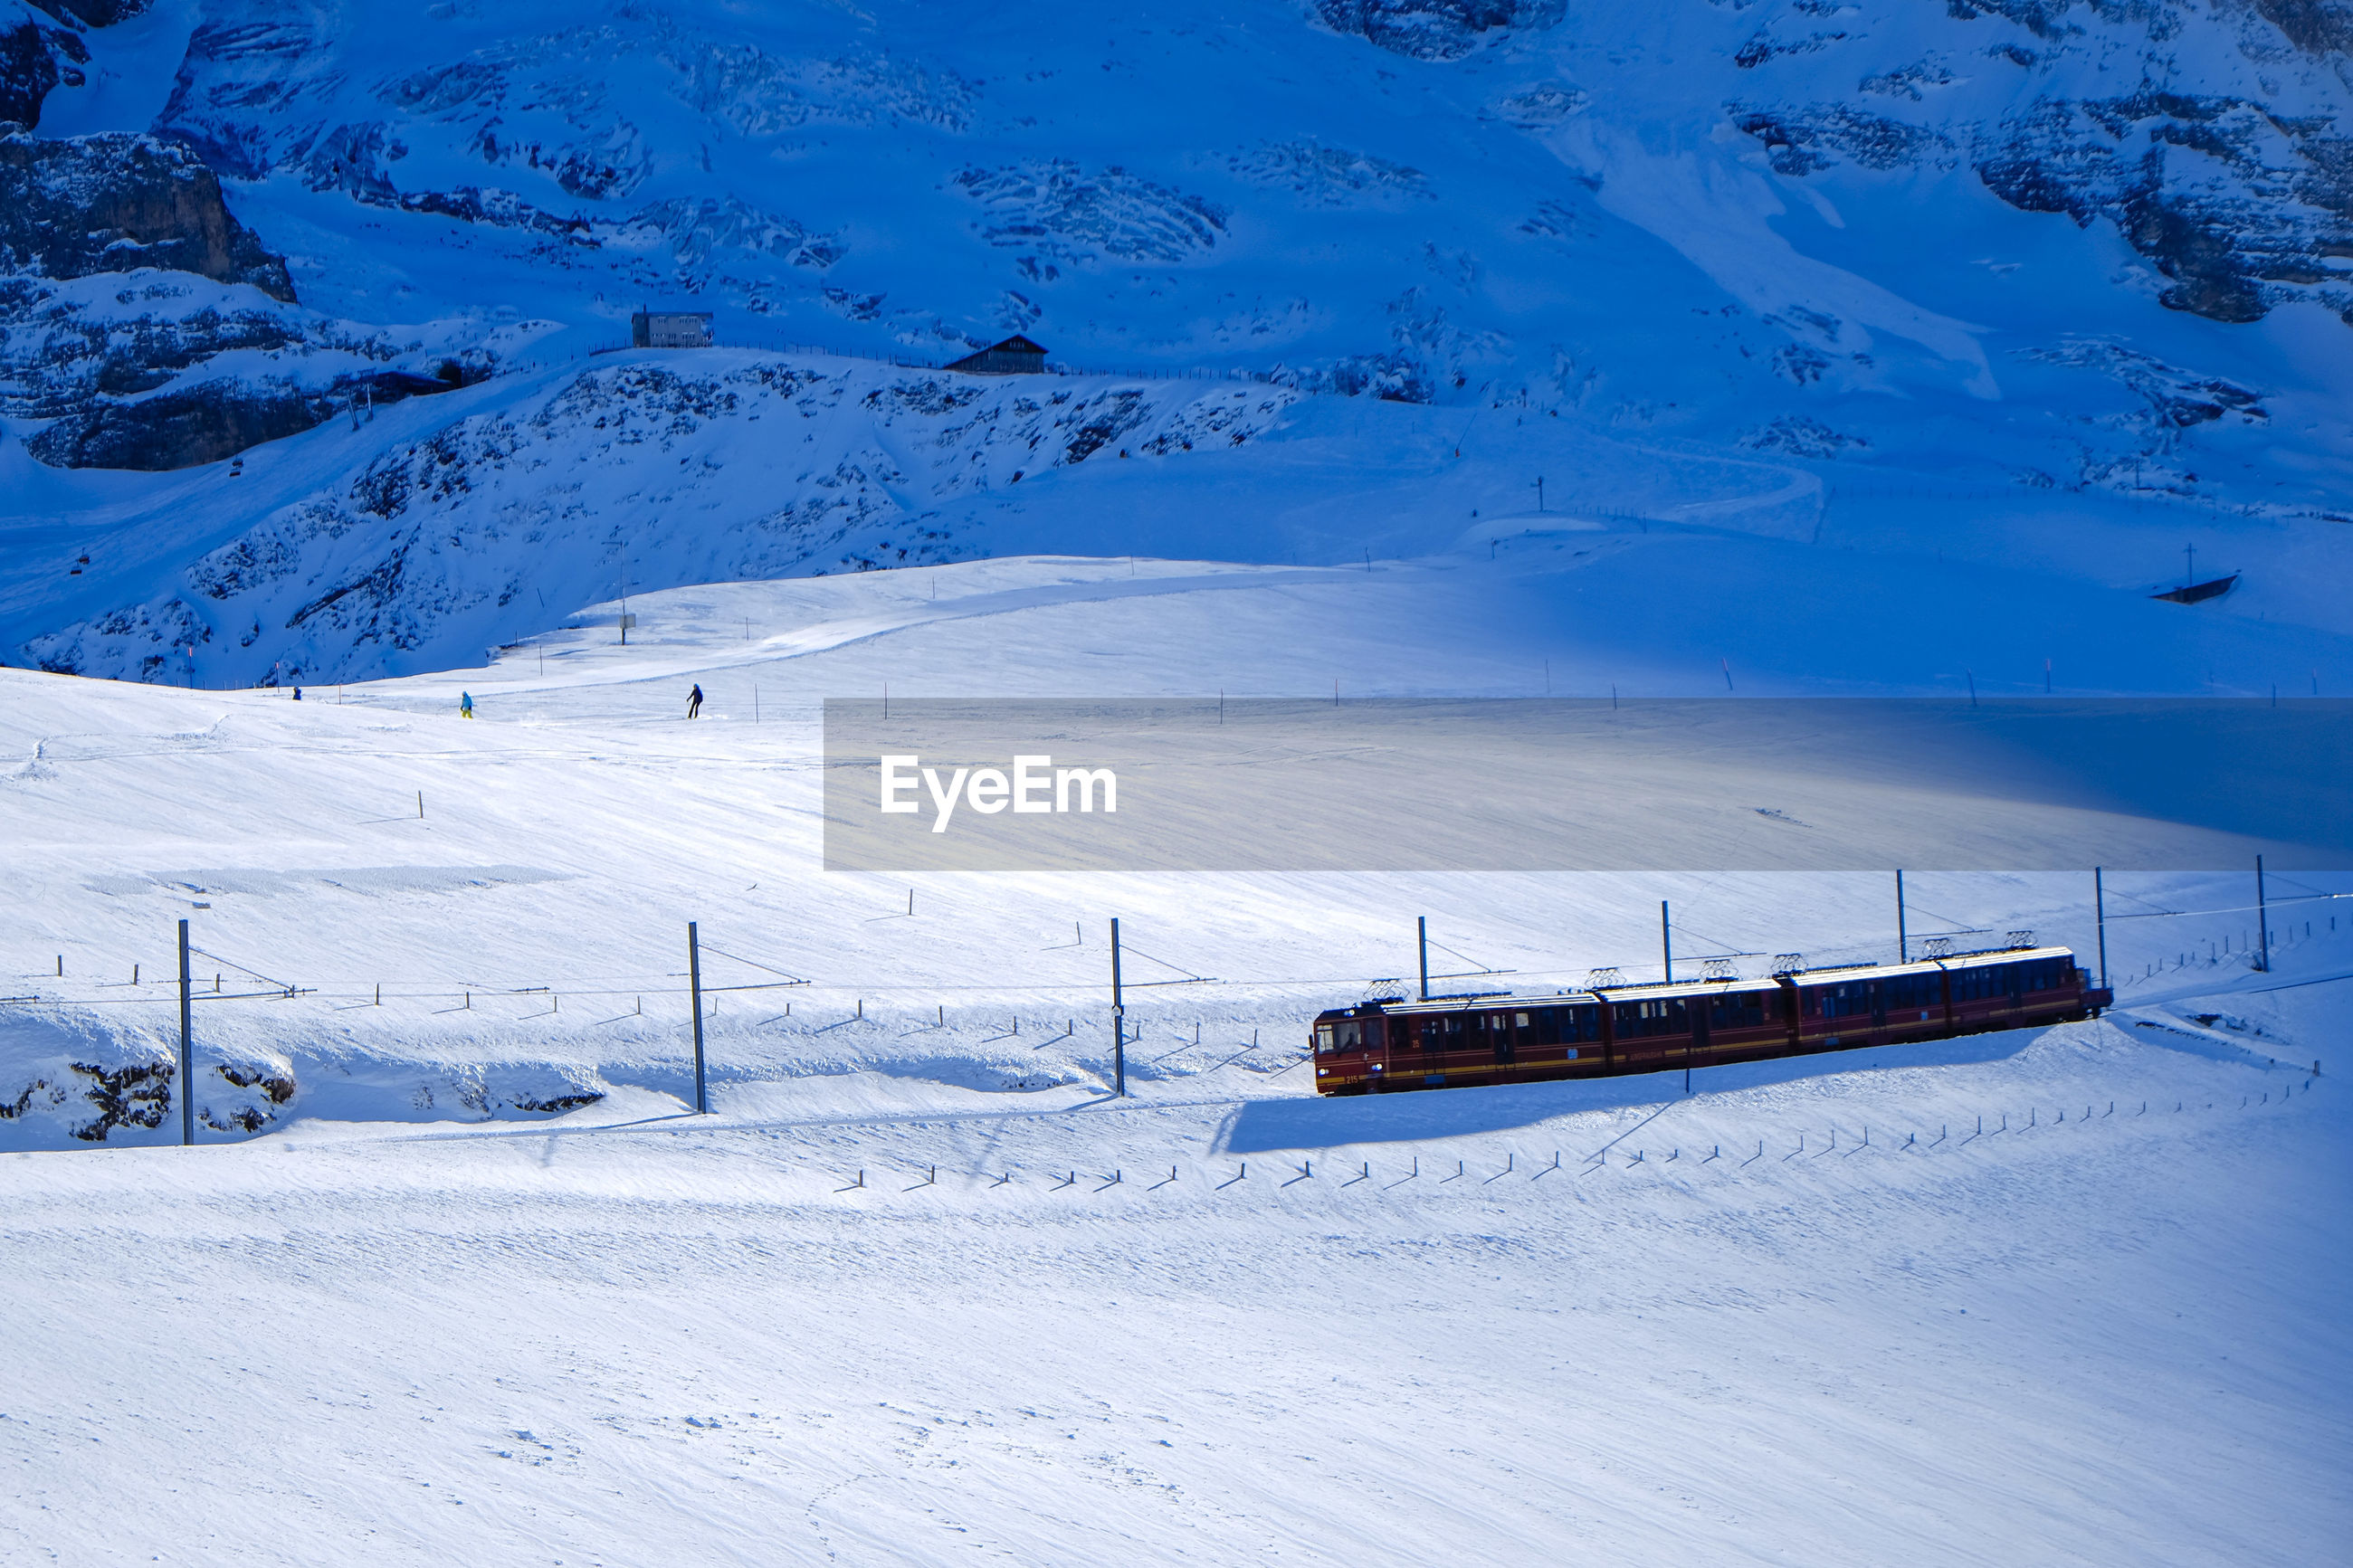 Train on snow covered field by alps